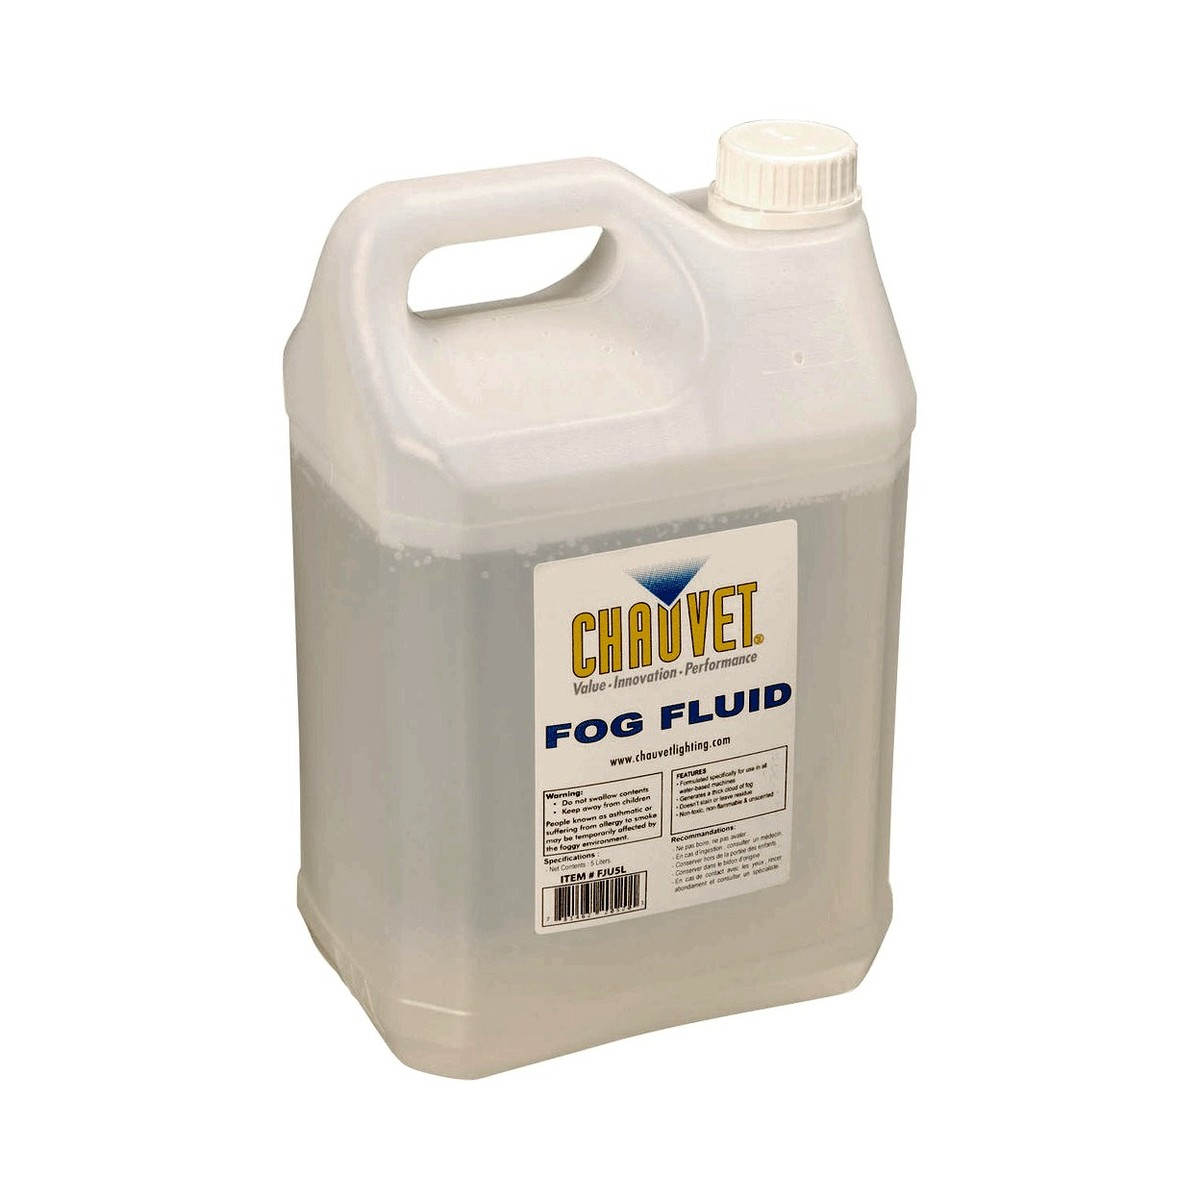 Image of Chauvet High Performance Fog Fluid - 5 liters